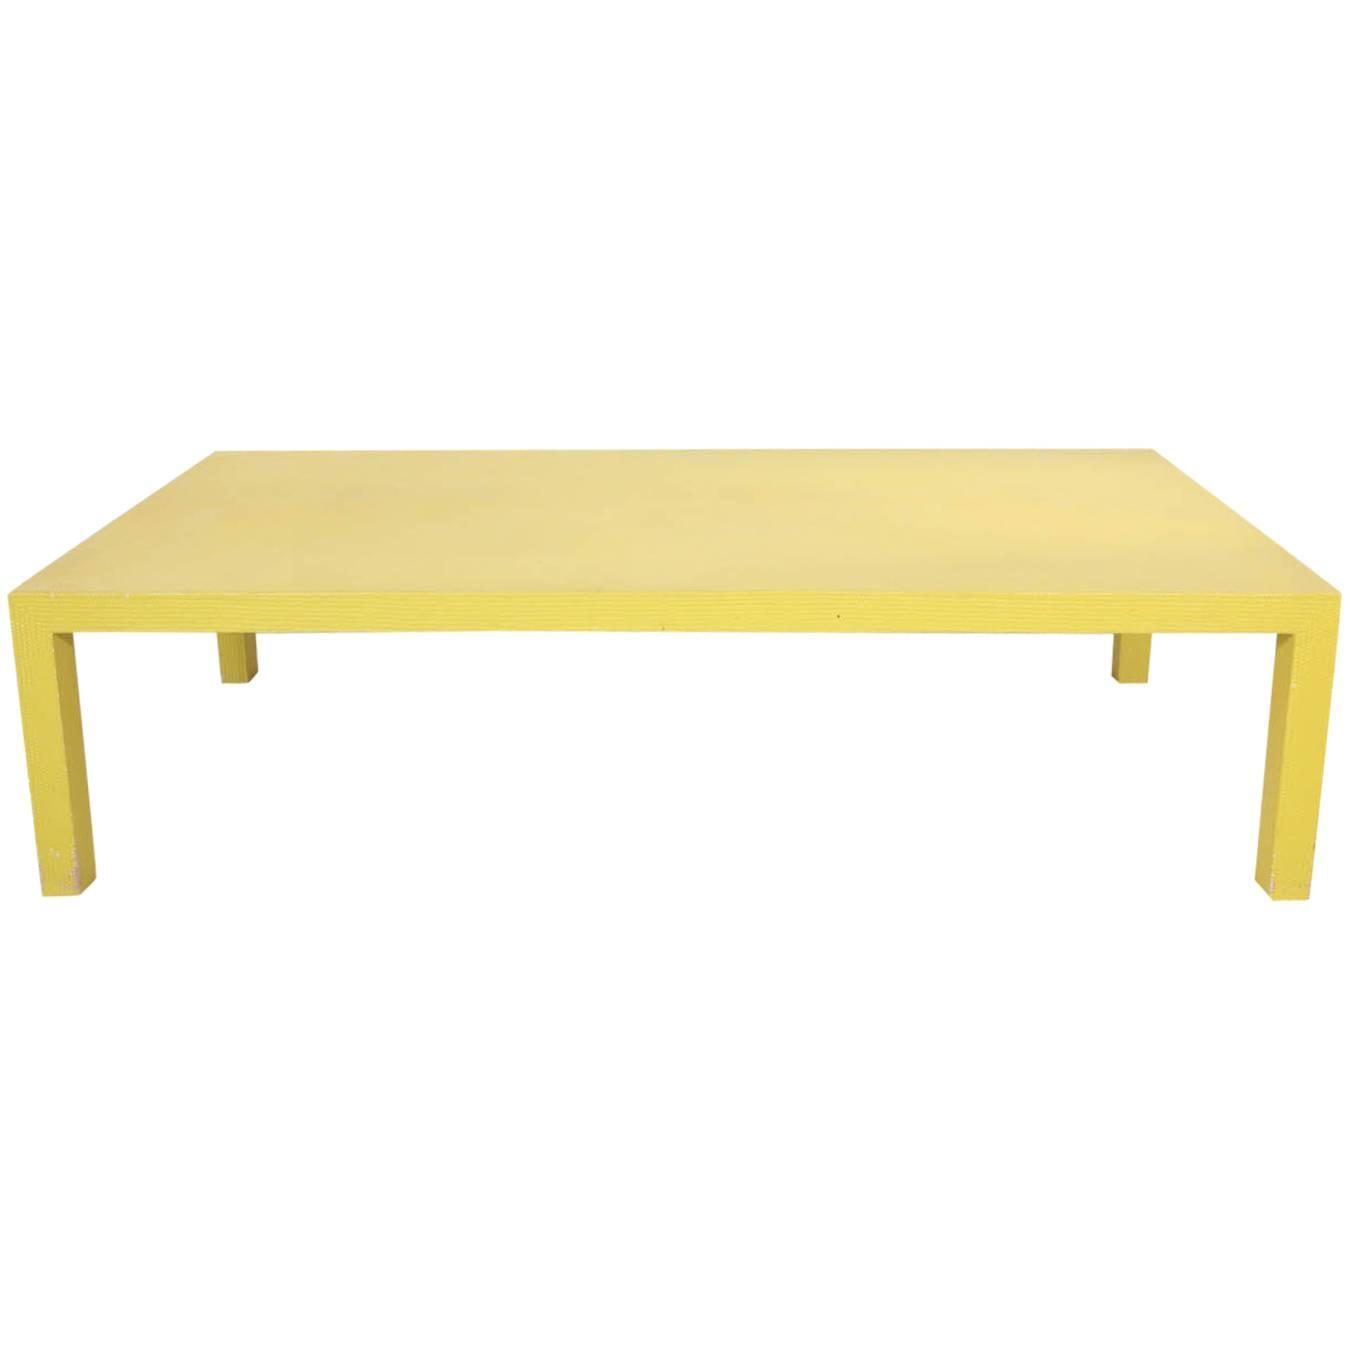 Yellow Woven Coffee Table Attributed To Karl Springer At 1stdibs